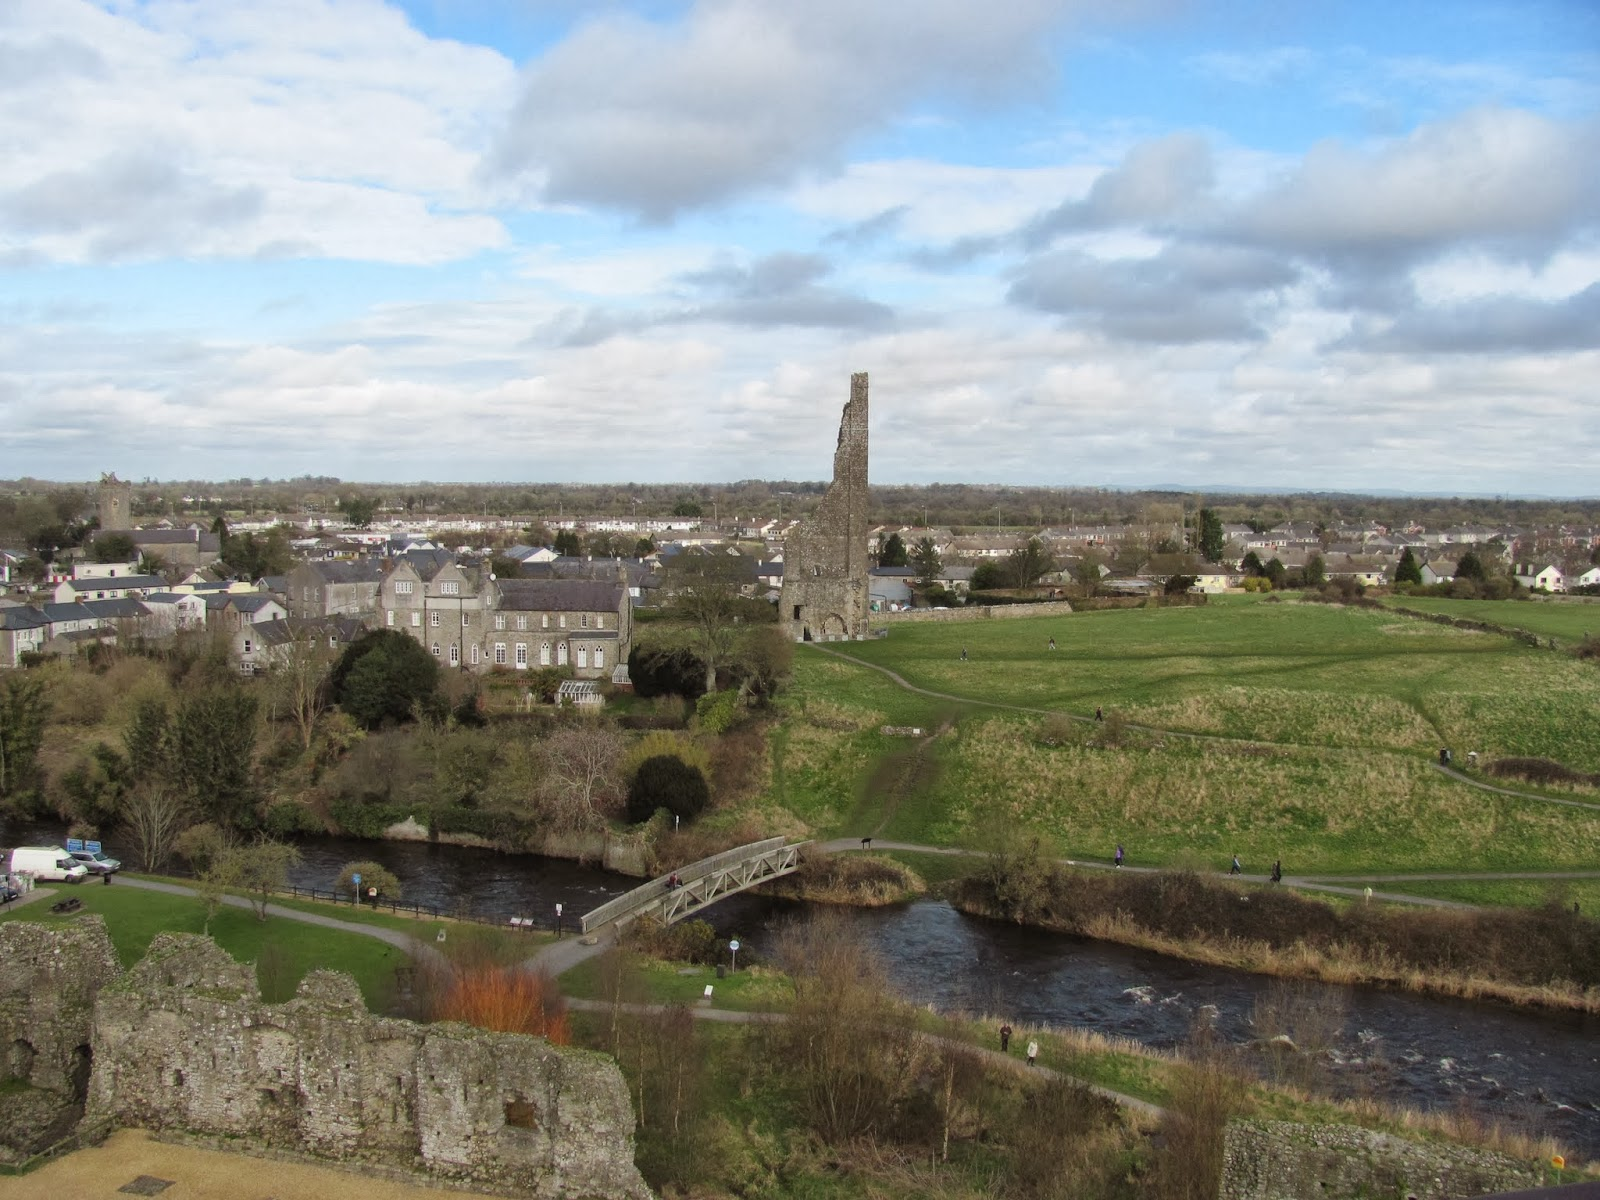 River Boyne and Yellow Steeple at Trim Castle, Trim, Ireland